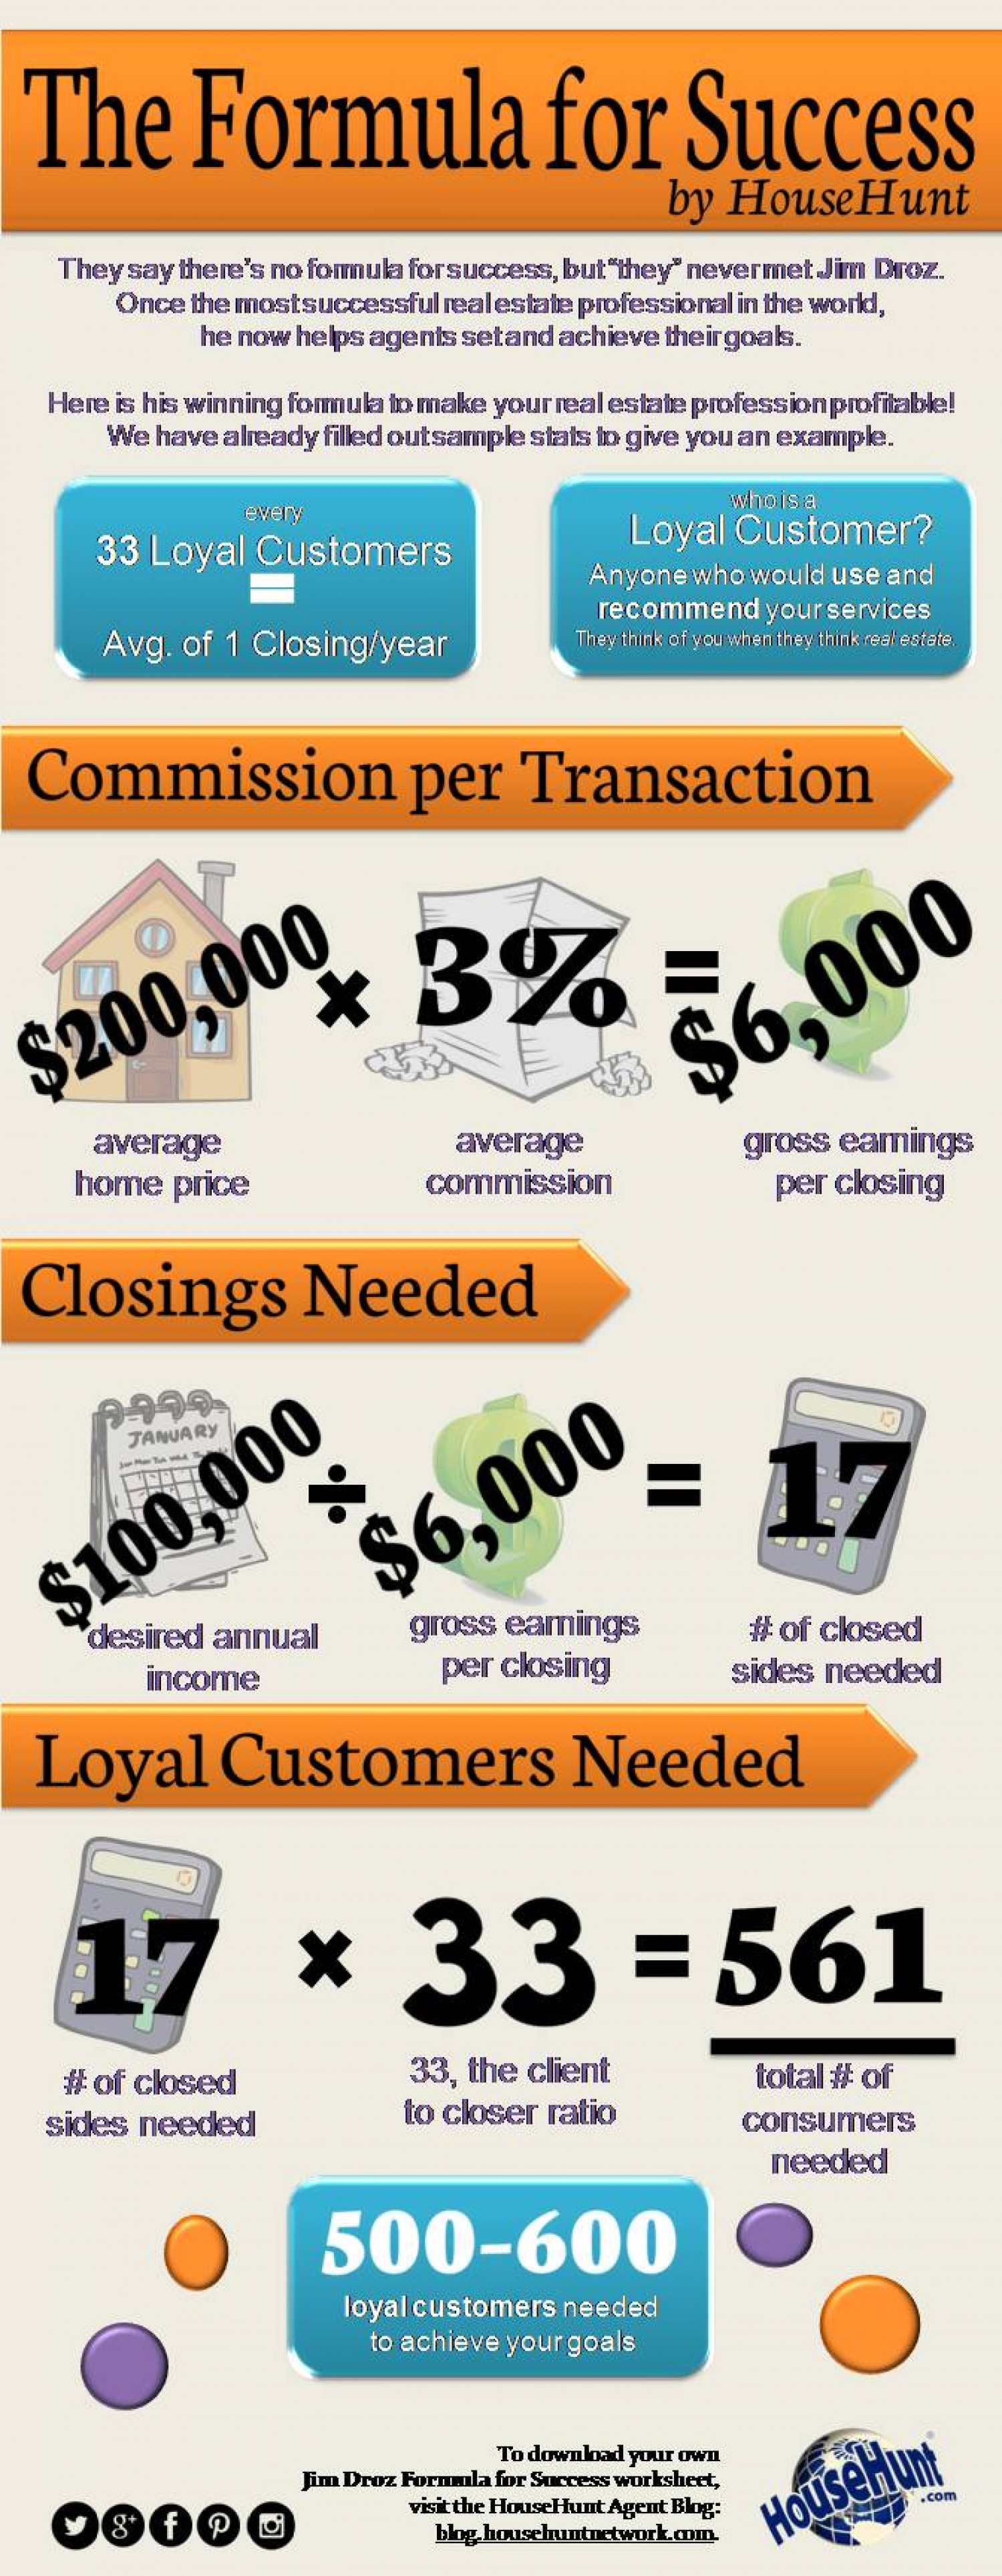 The Formula for Real Estate Success Infographic